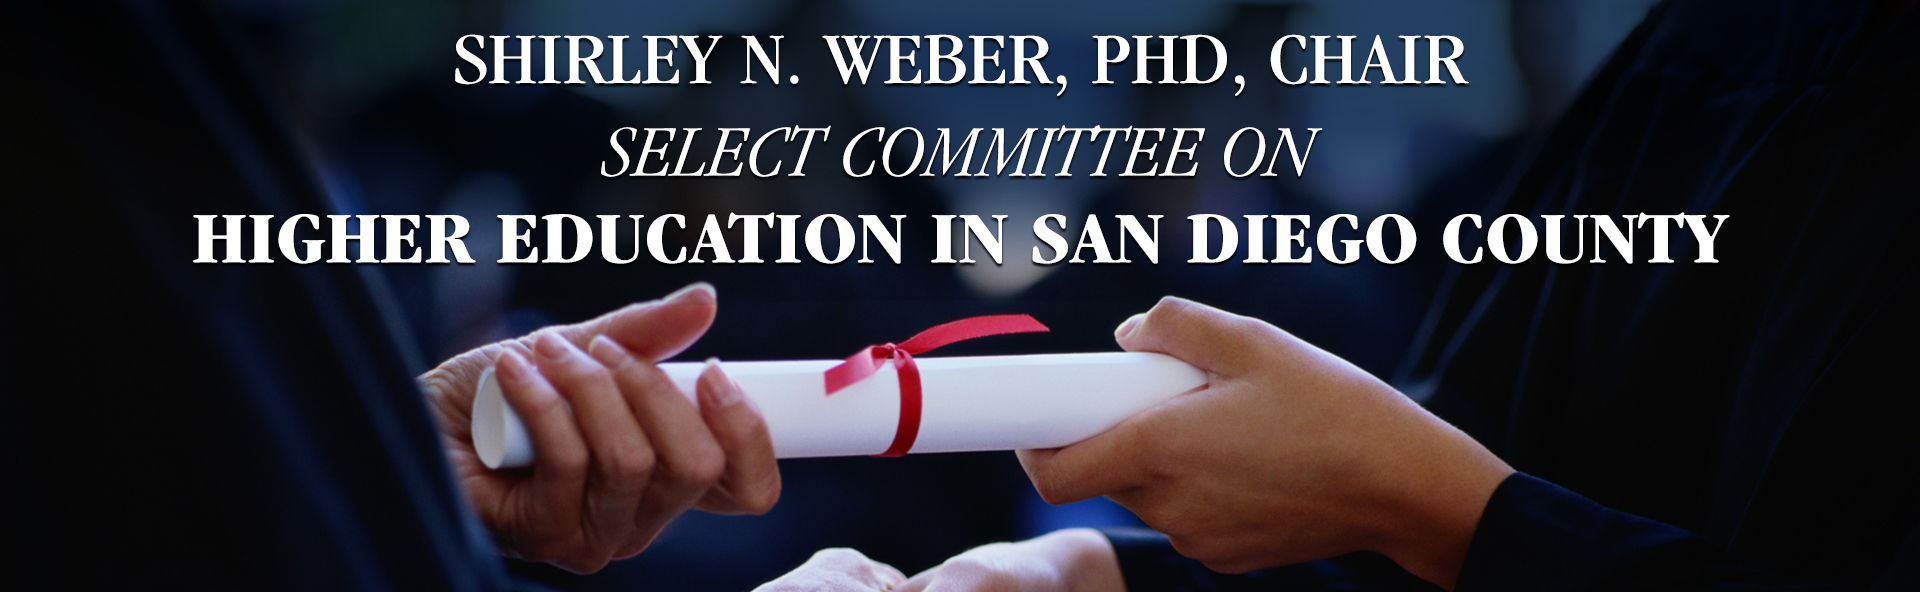 Select Committee on Higher Education in San Diego County